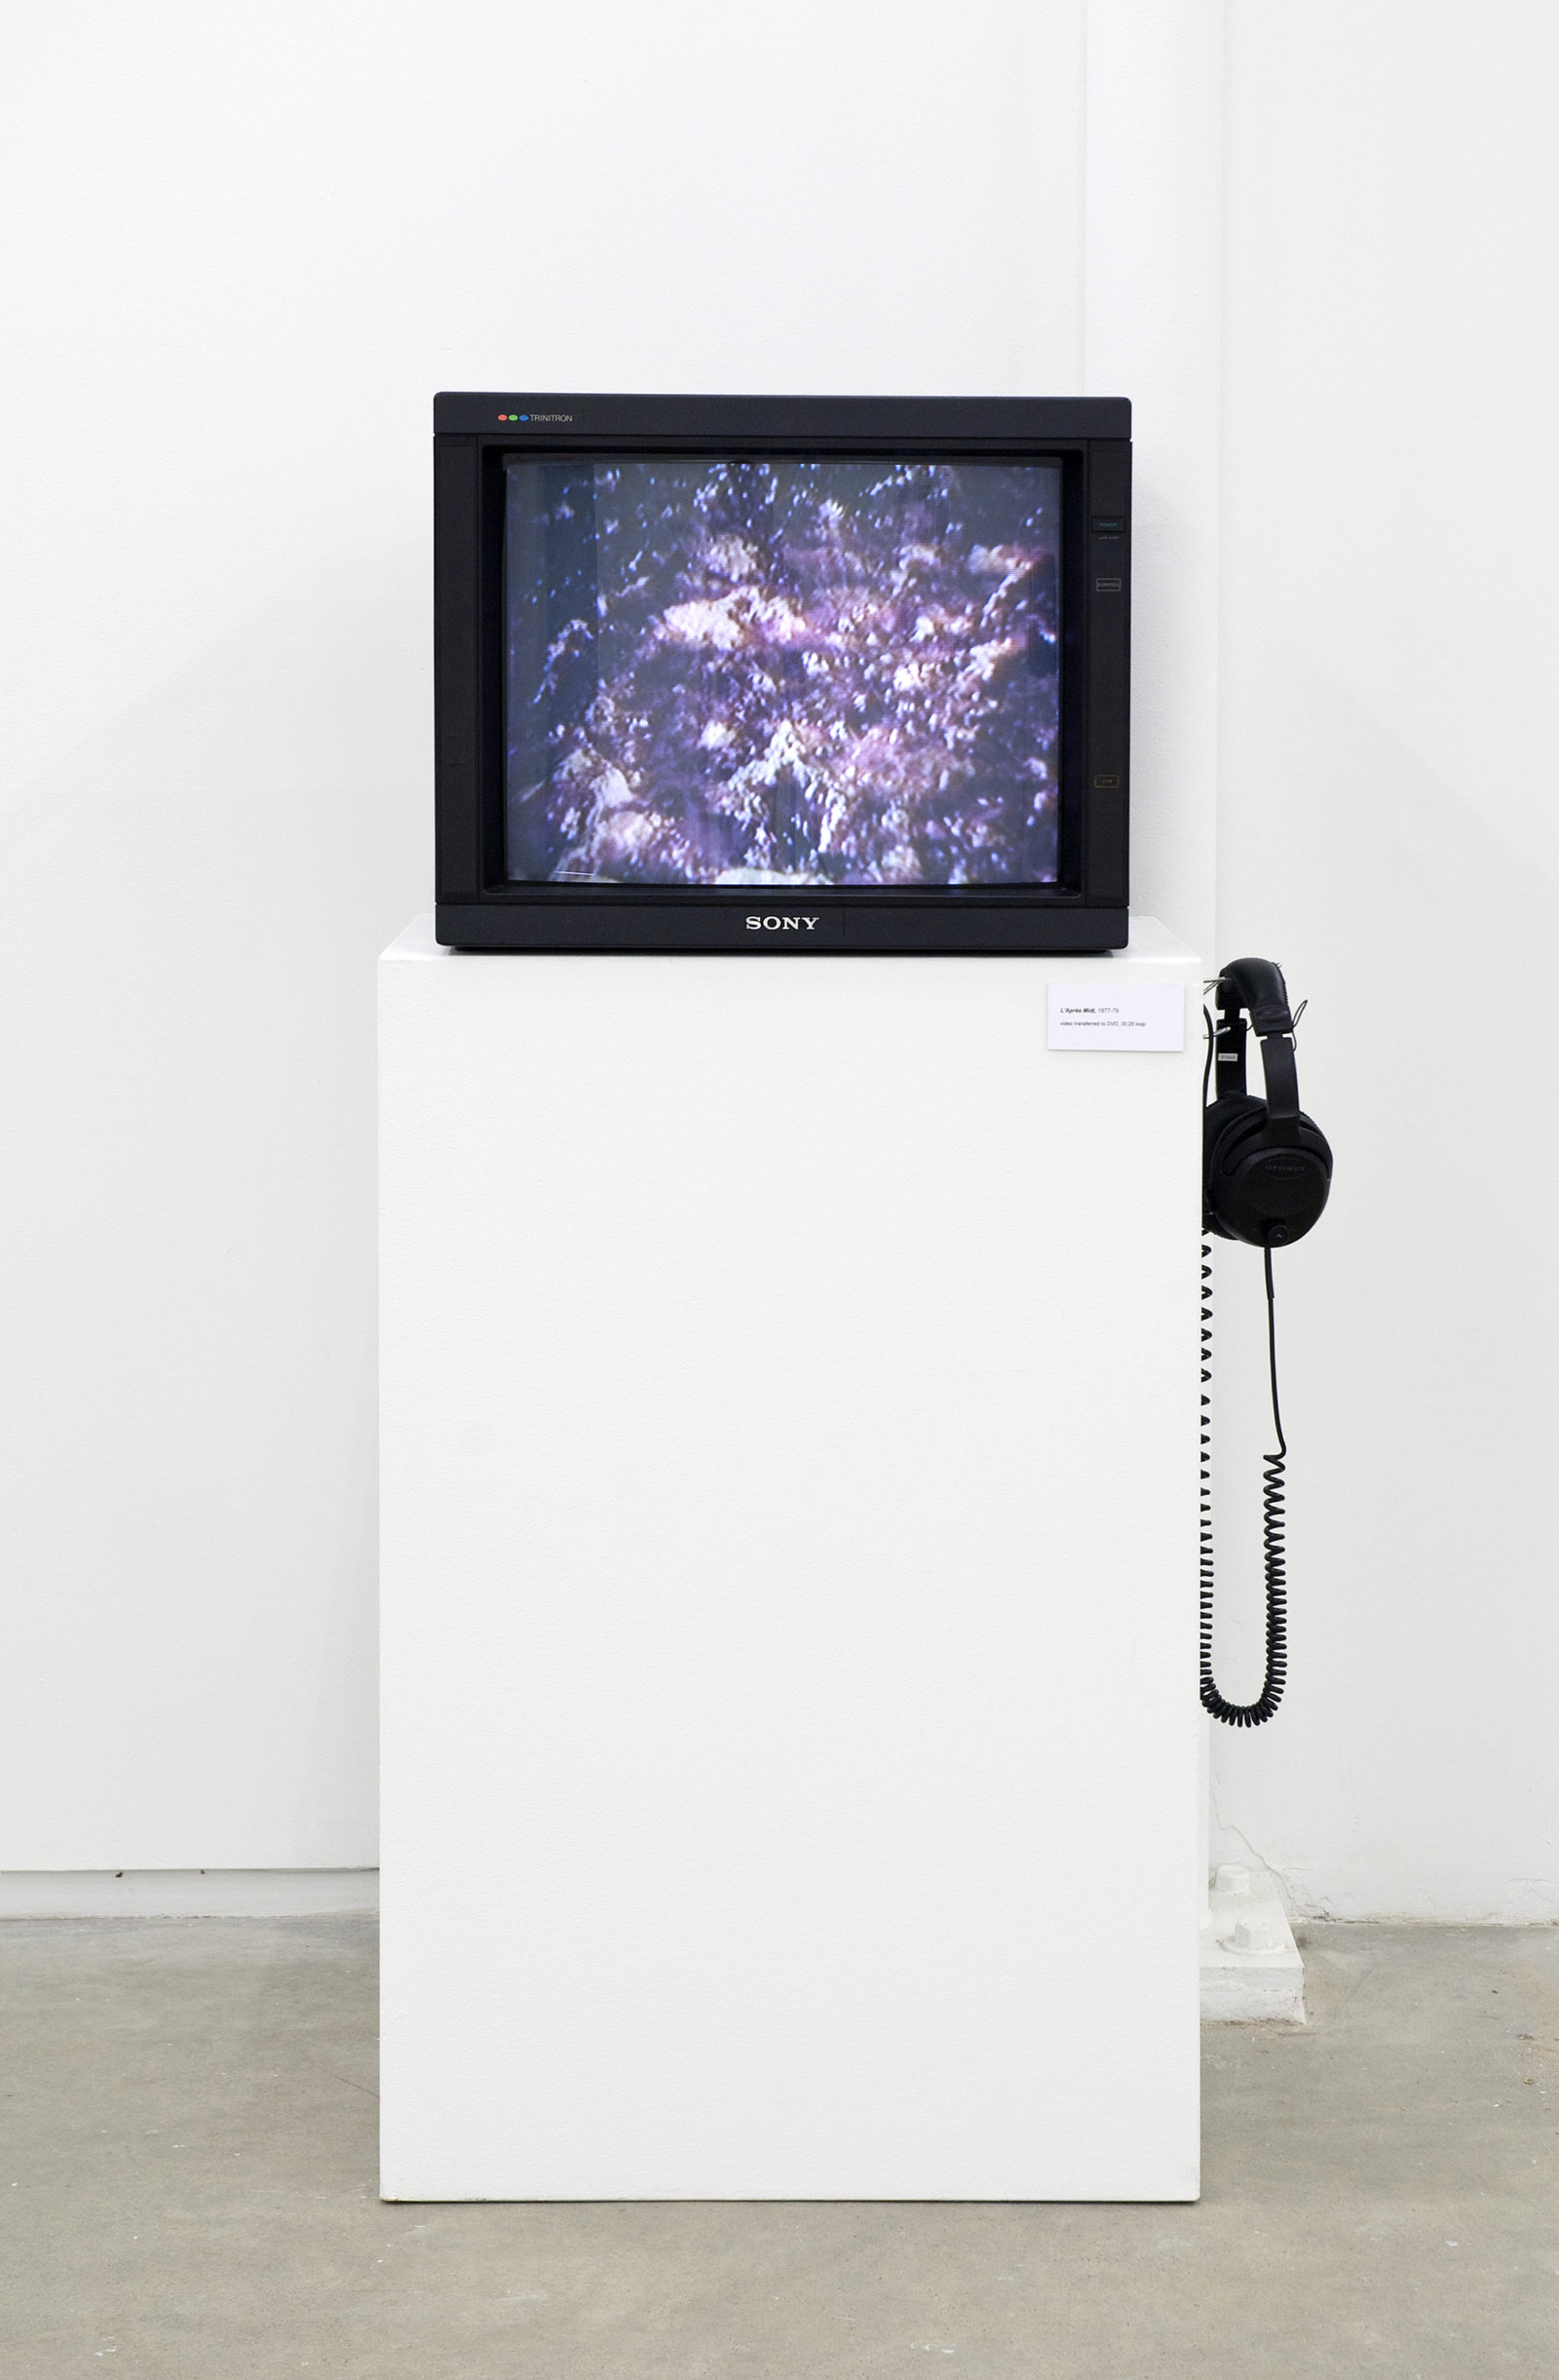 Ian Wallace, L'Après Midi, 1977–1979, 3/4 inch video transferred to DVD, 30 mintues, 25 seconds looped by Ian Wallace